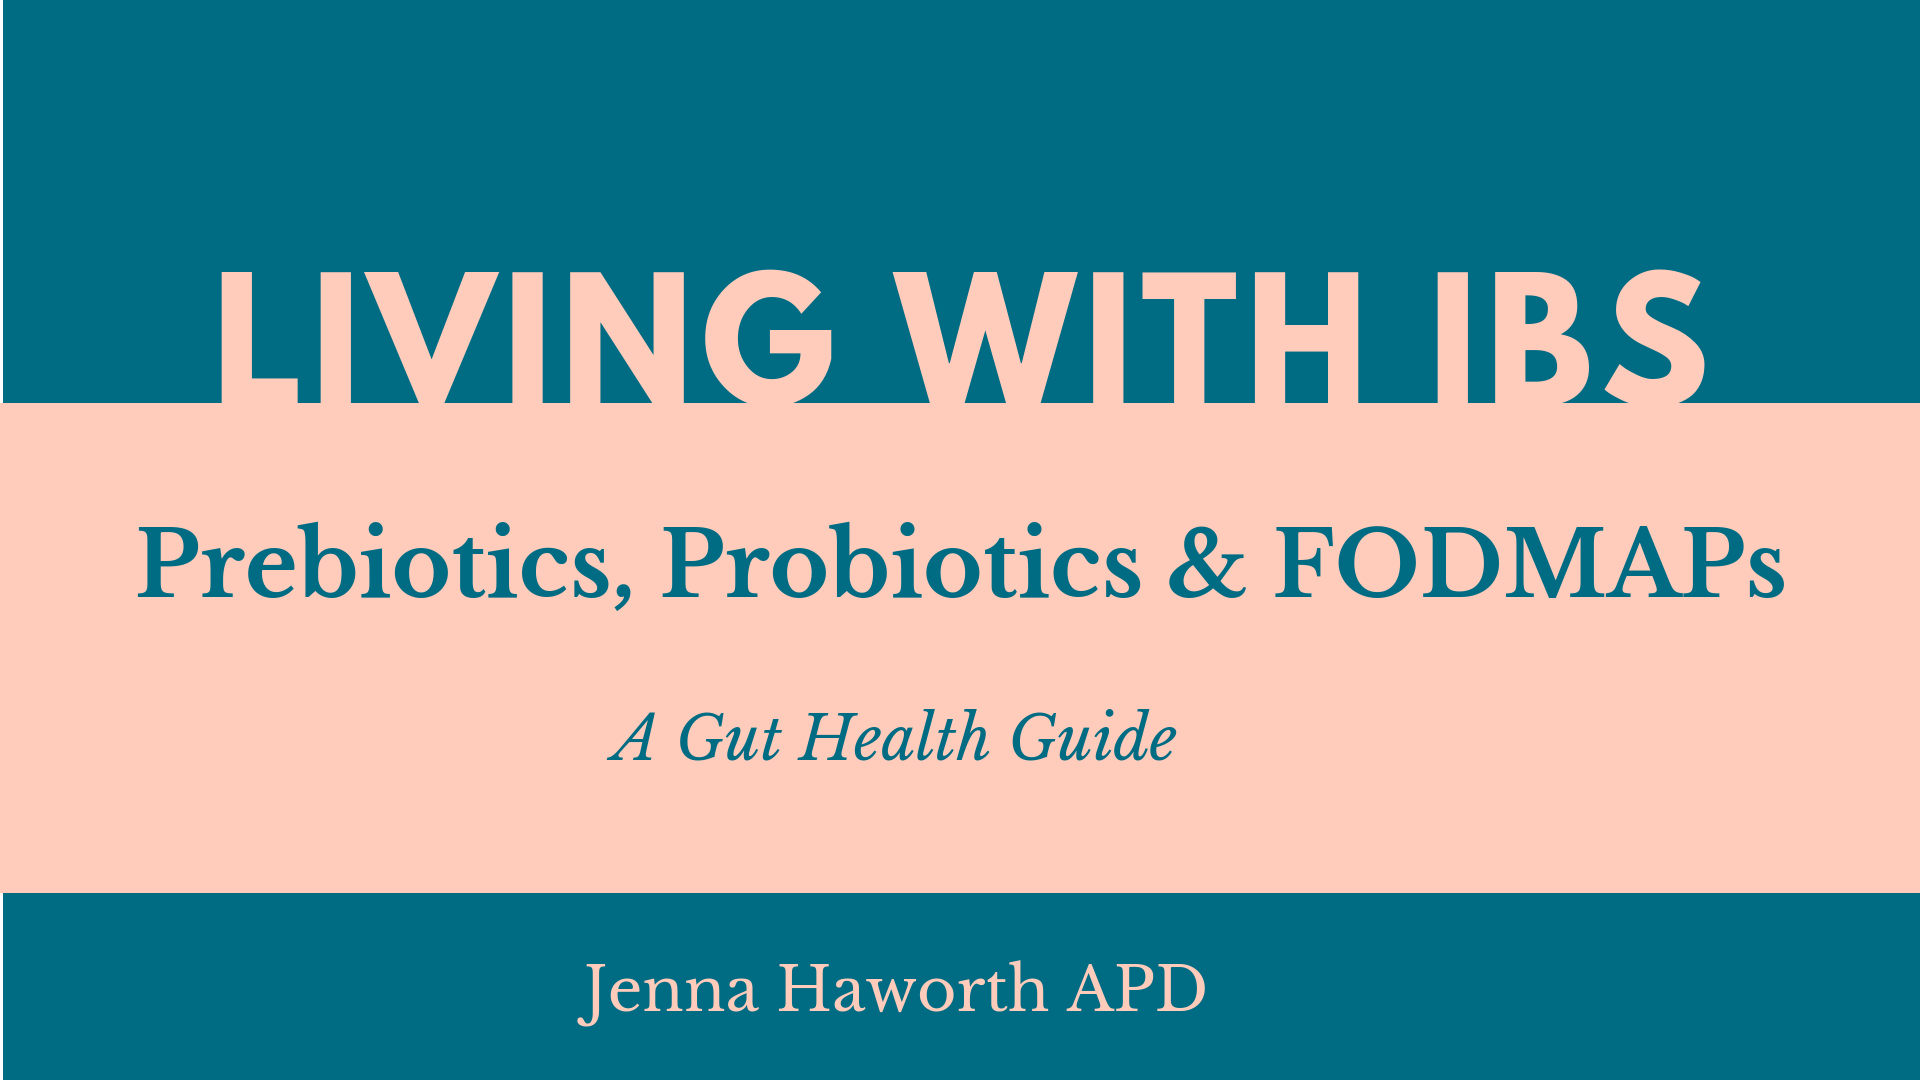 Living with IBS: A Gut Health Guide